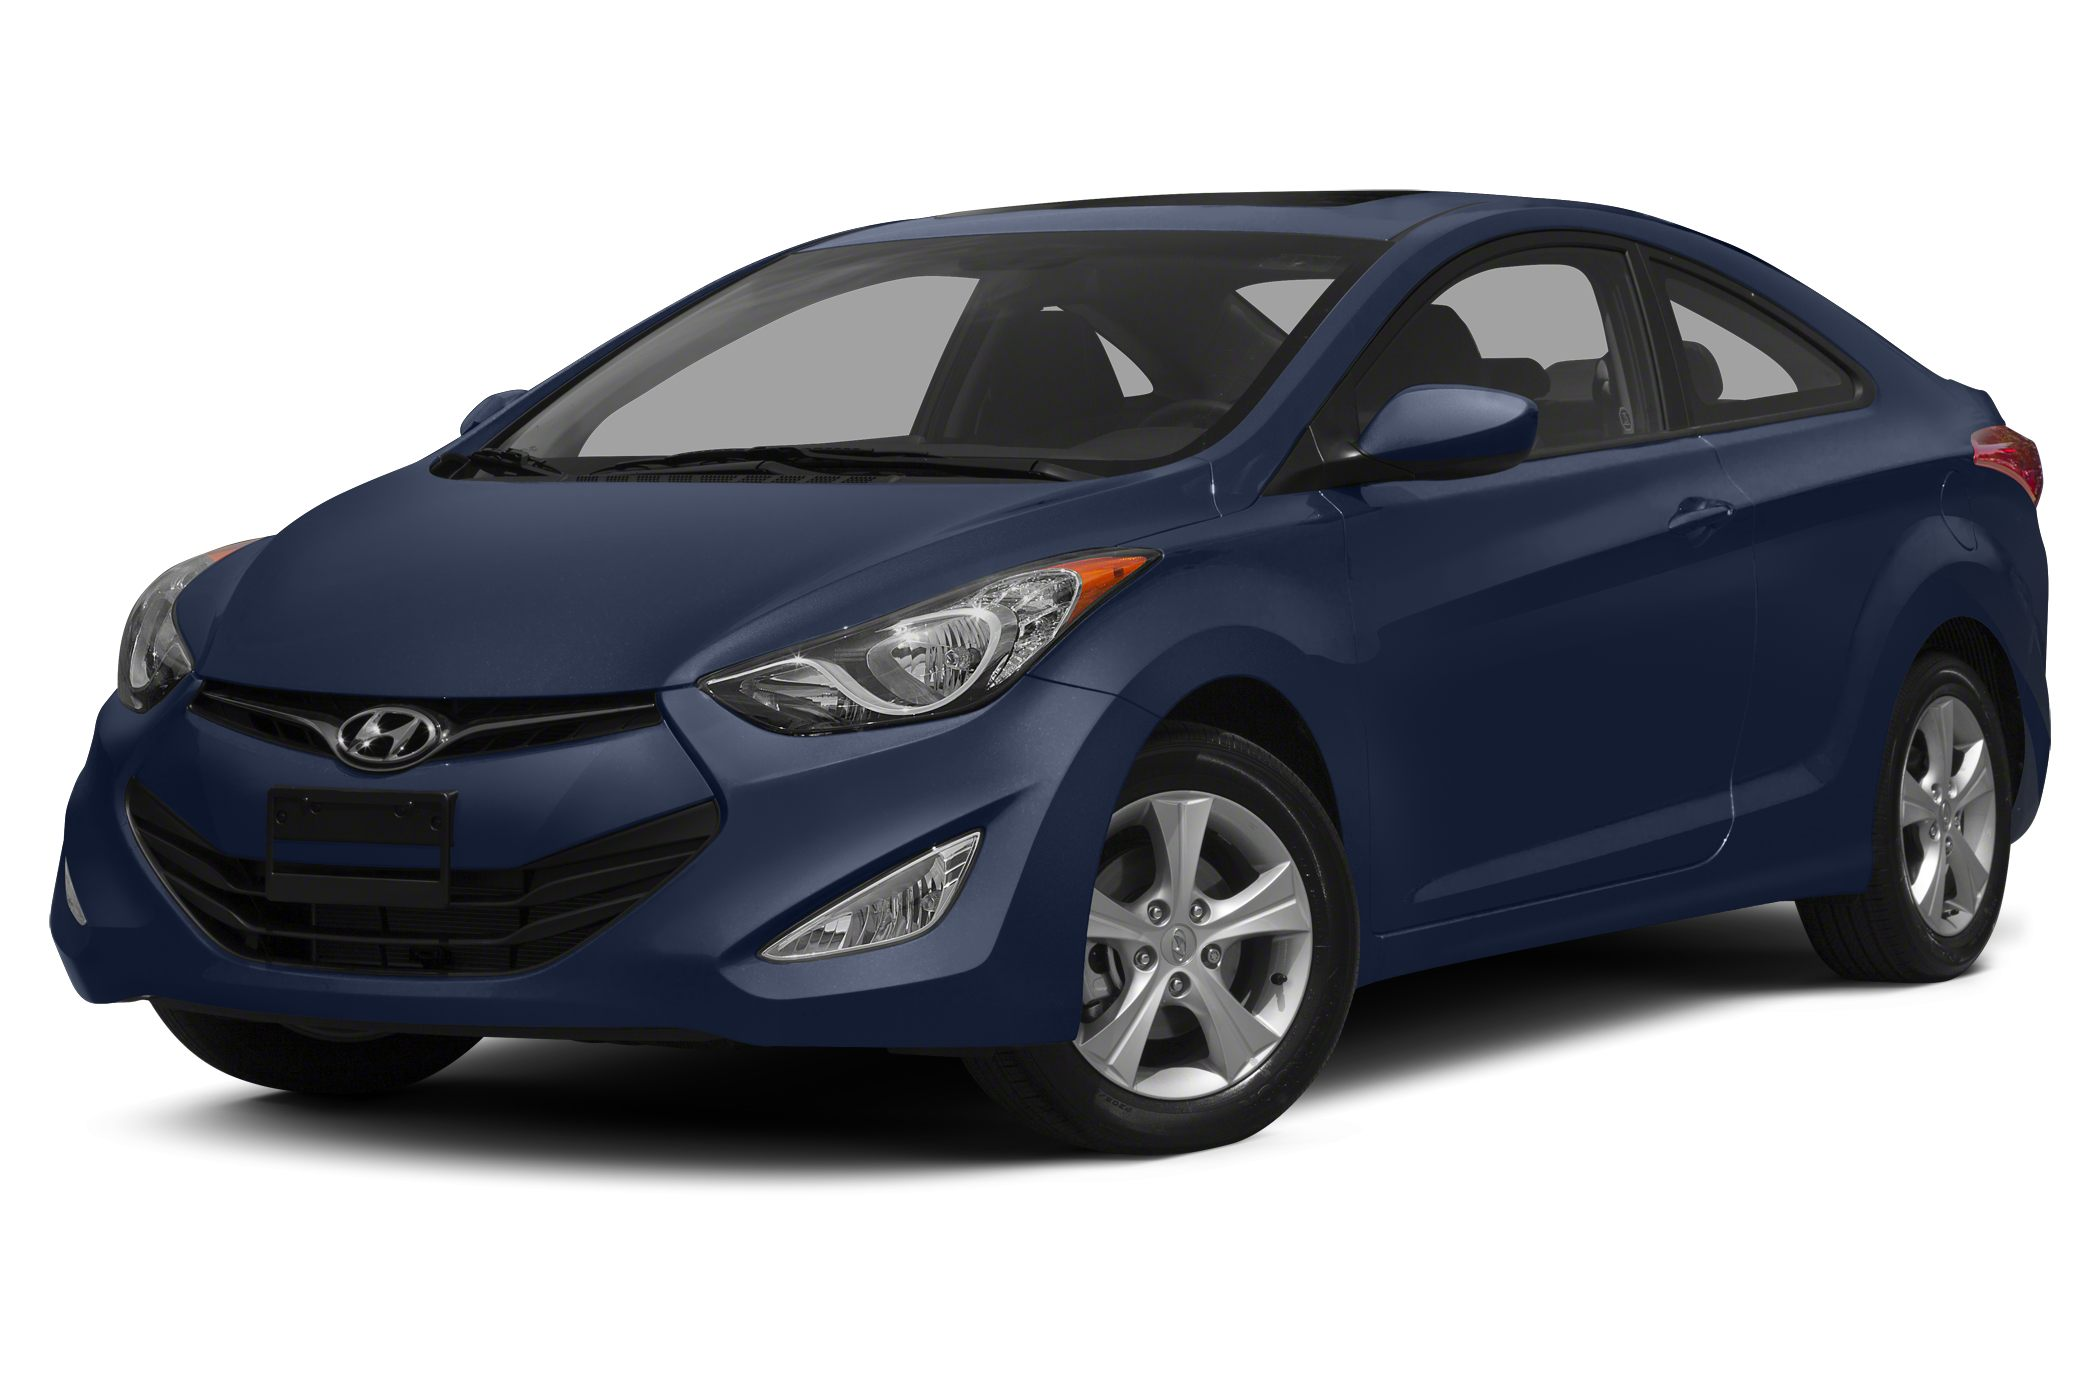 2013 Hyundai Elantra SE Coupe for sale in Clarksville for $16,854 with 24,600 miles.